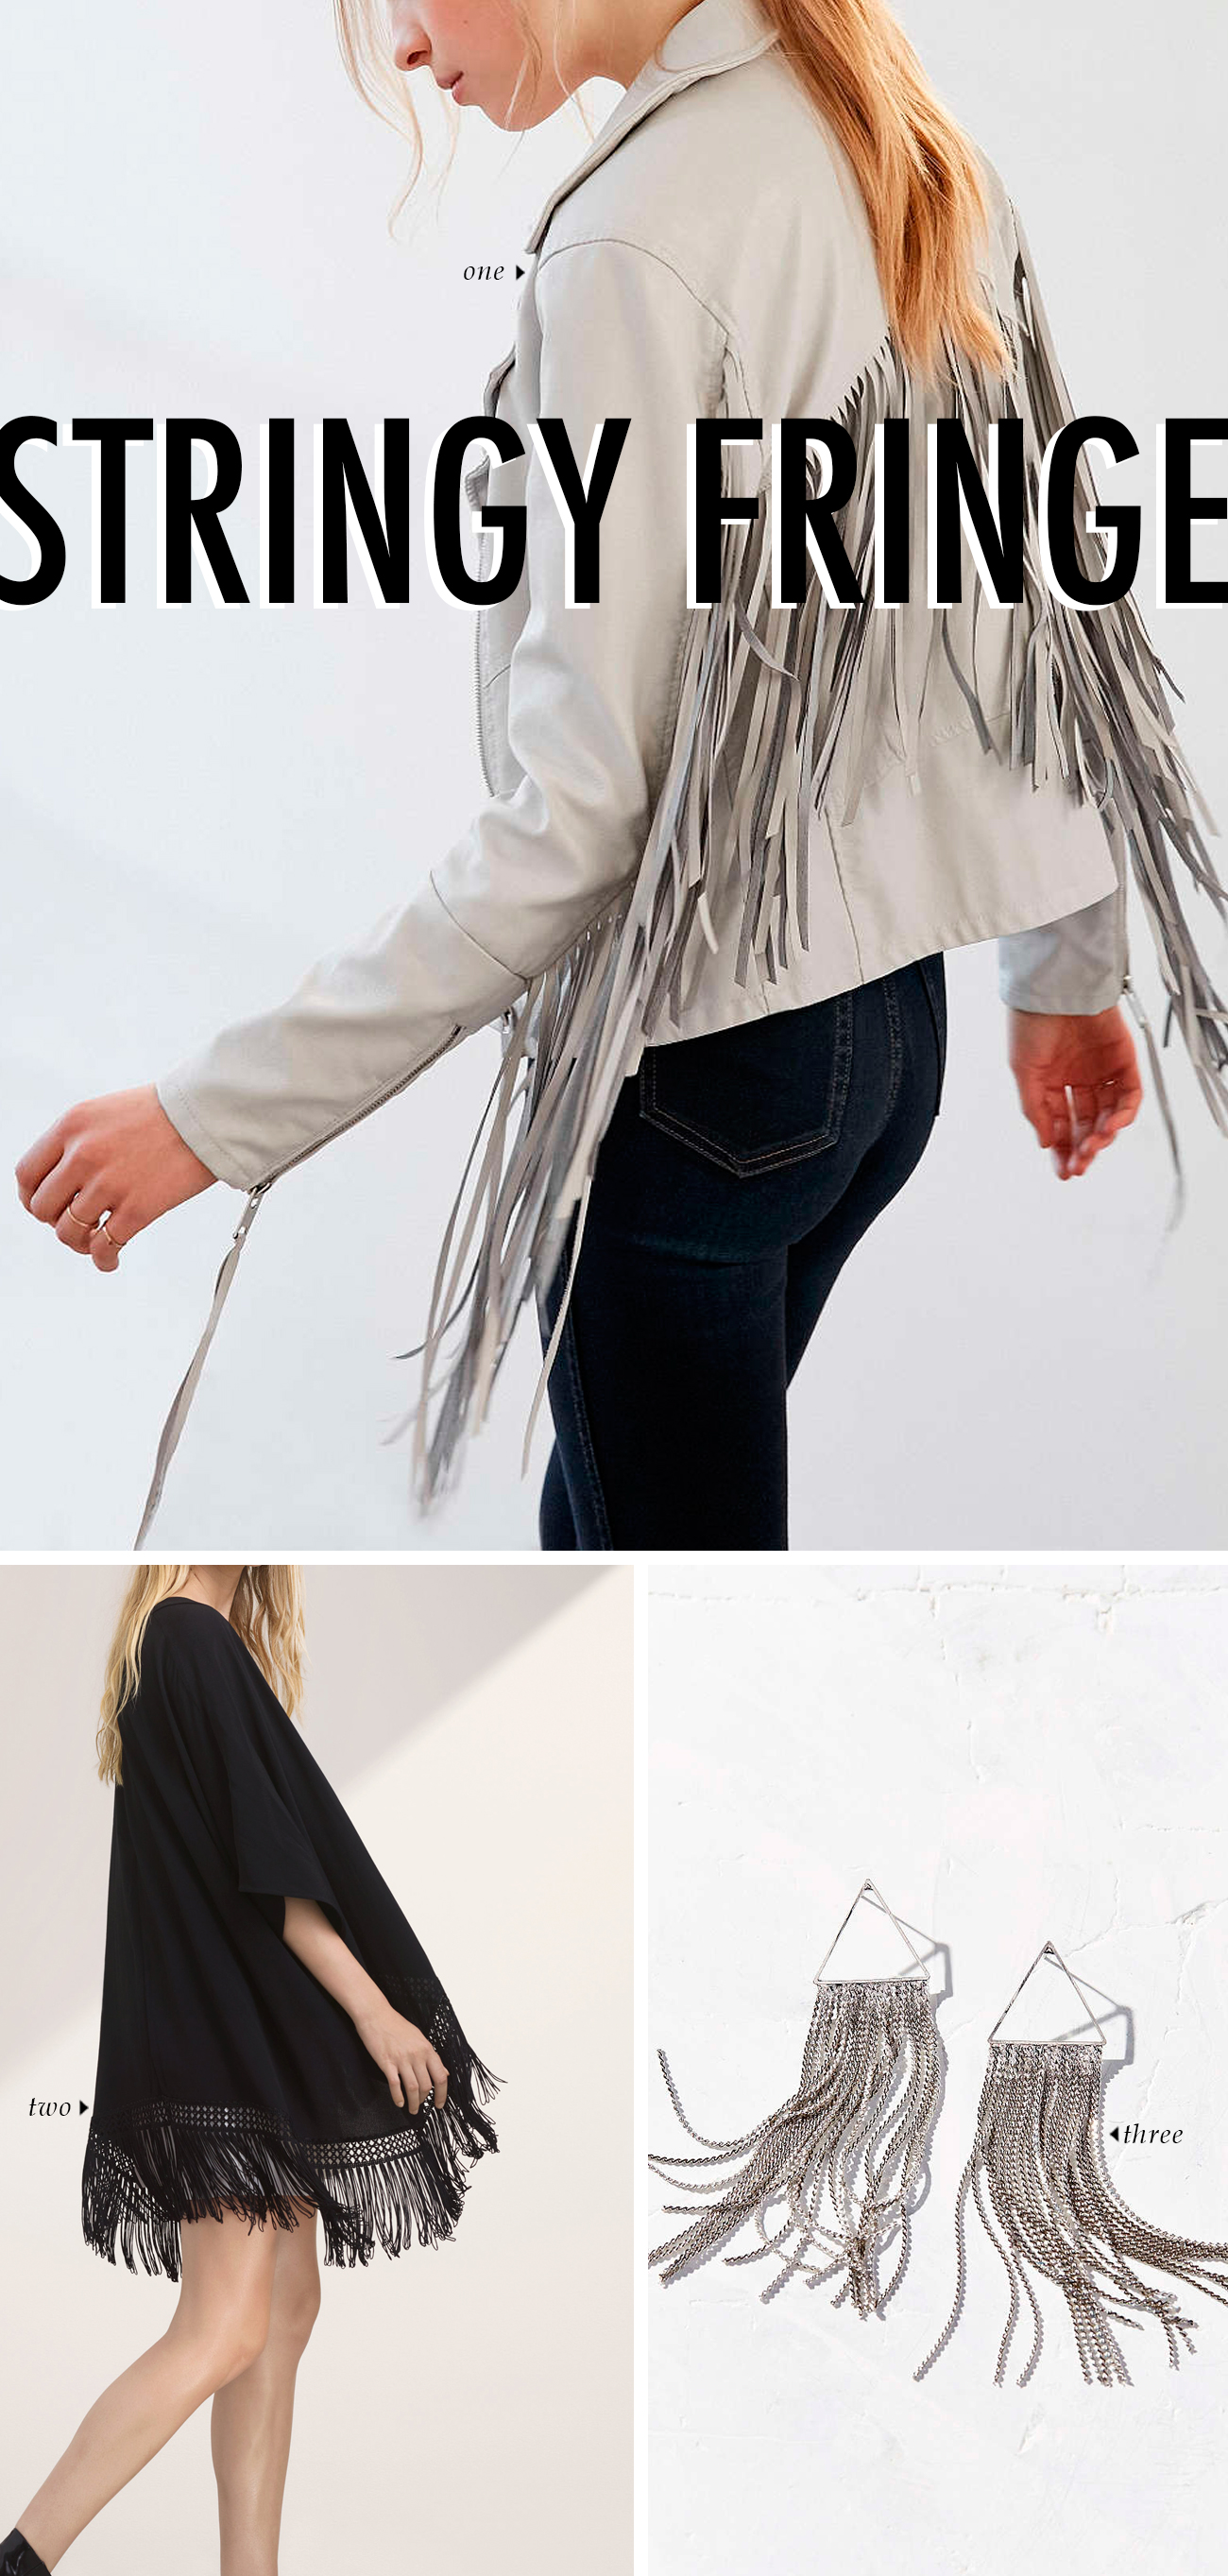 spring summer 2016 clothing trends - STRINGY FRINGE #trends